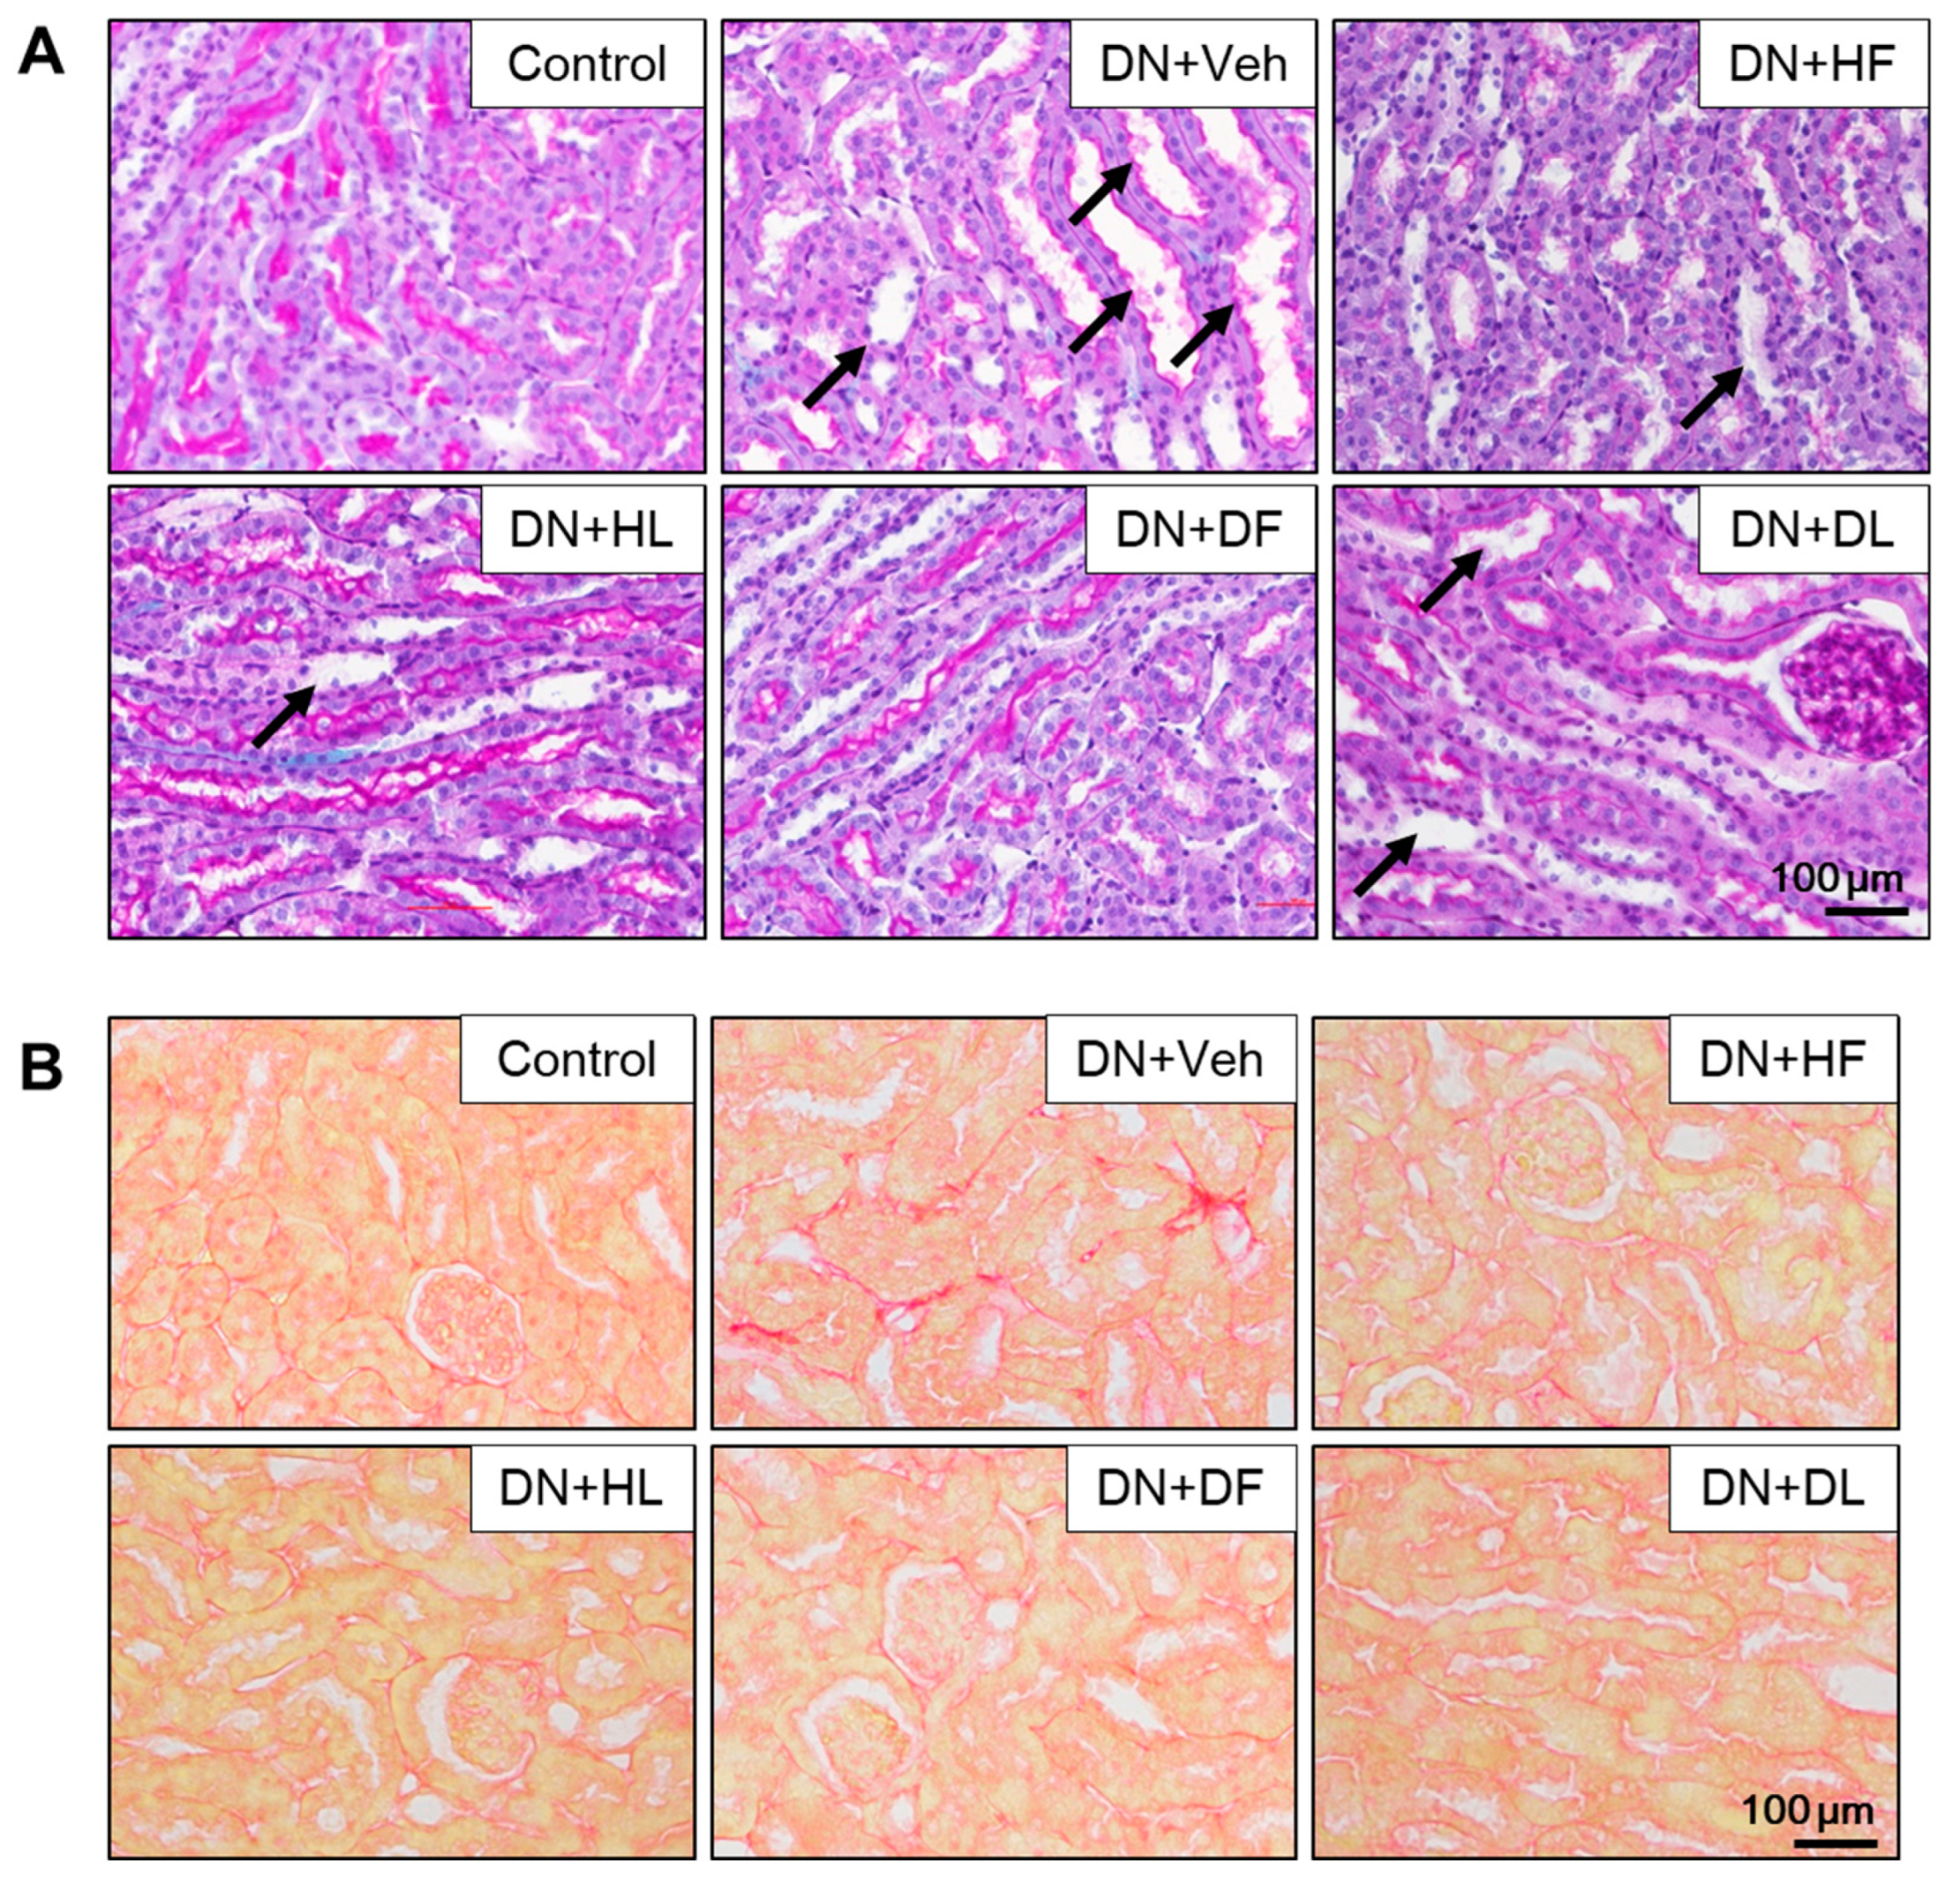 Nutrients Free Full Text Supplementation Of Abelmoschus Manihot Ameliorates Diabetic Nephropathy And Hepatic Steatosis By Activating Autophagy In Mice Html